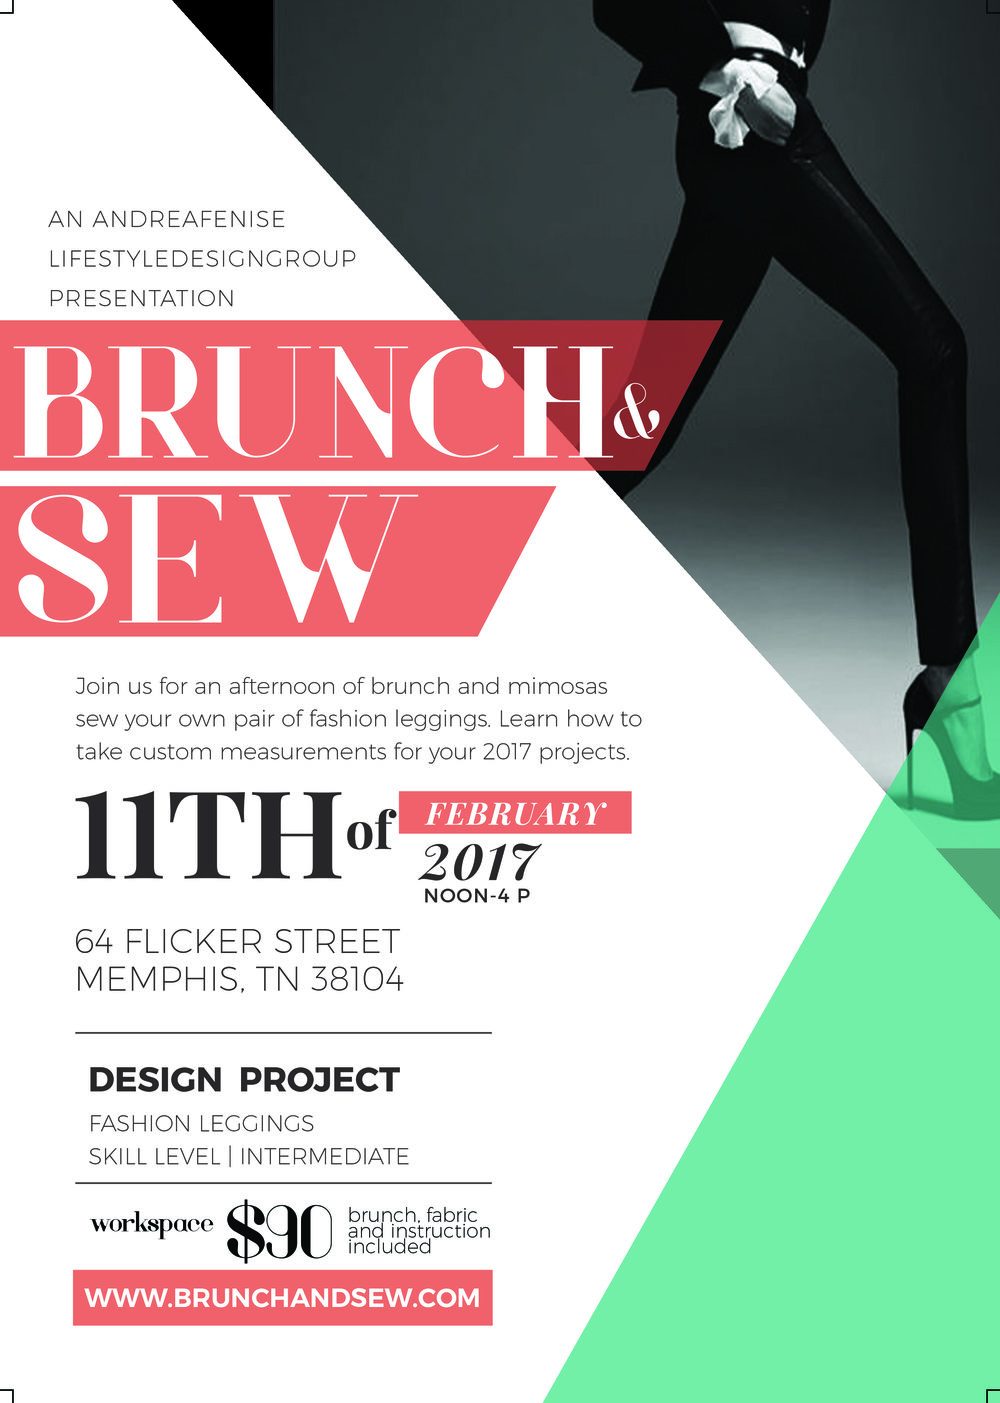 Brunch and Sew by Andrea Fenise Lifestyle Design Group's February event